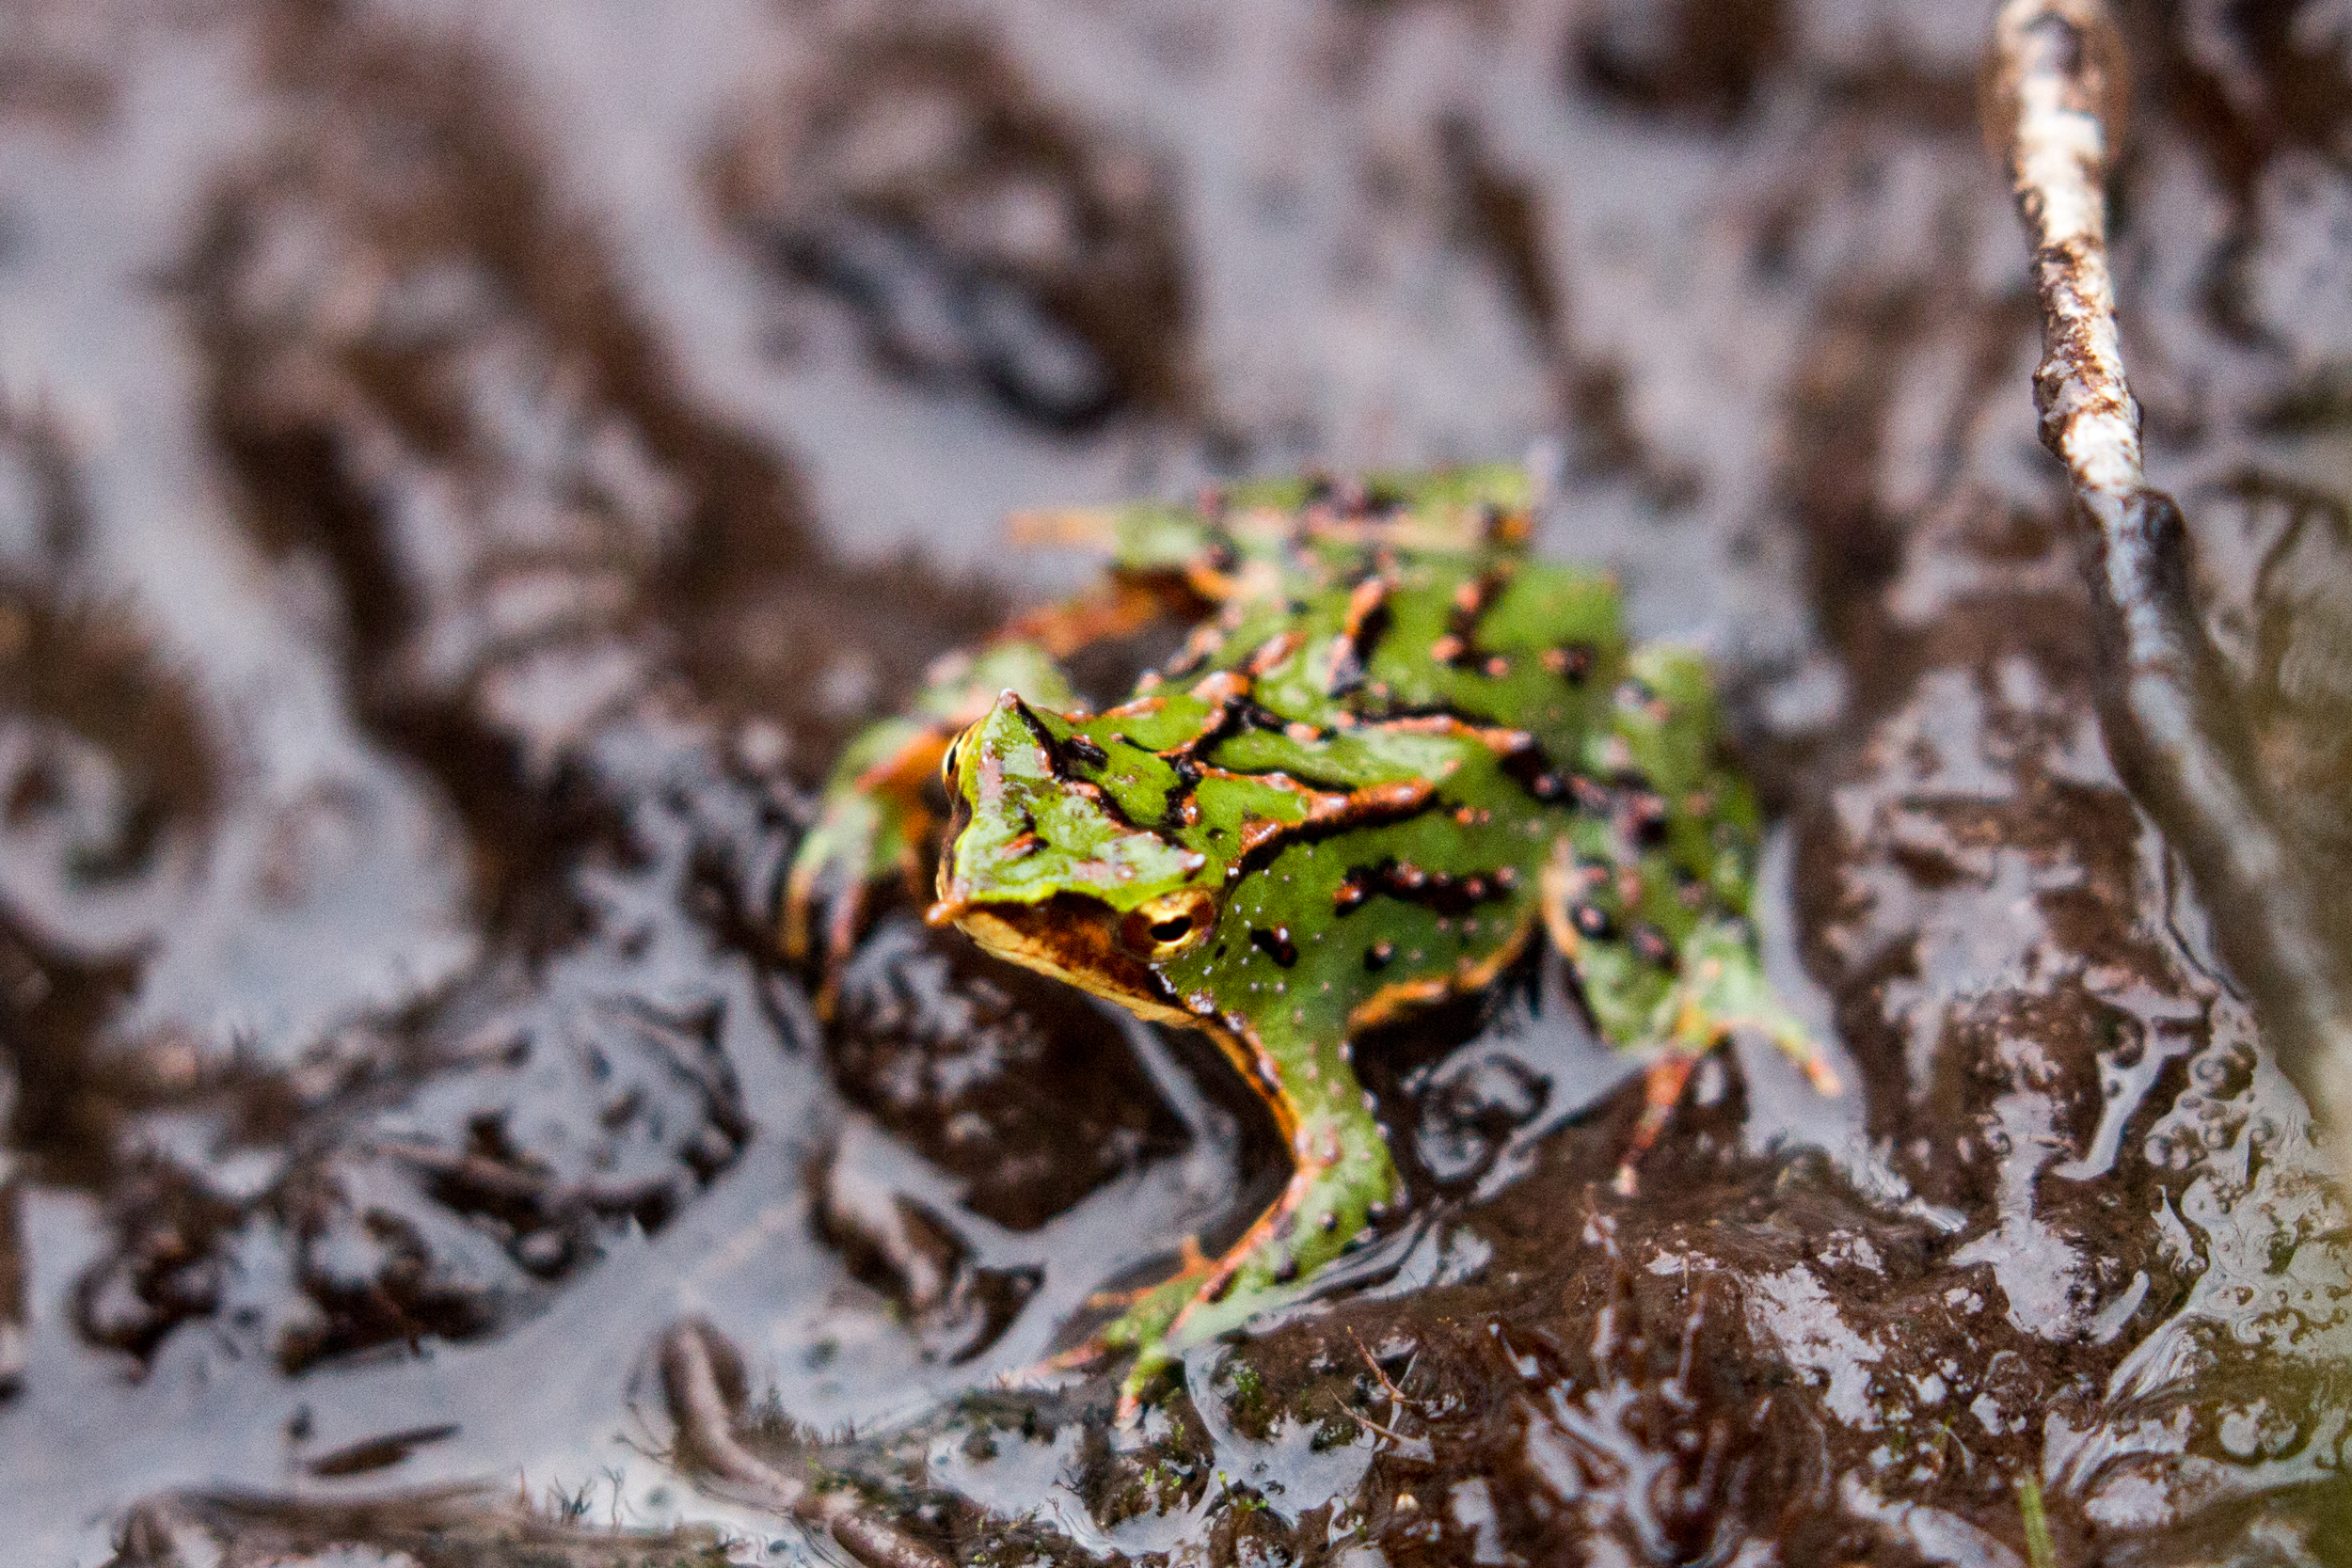 southern Darwin's frog (Rhinoderma darwinii) - The southern Darwin's frog, a tiny resident of the temperate rainforests of Chile and Argentina. Called the